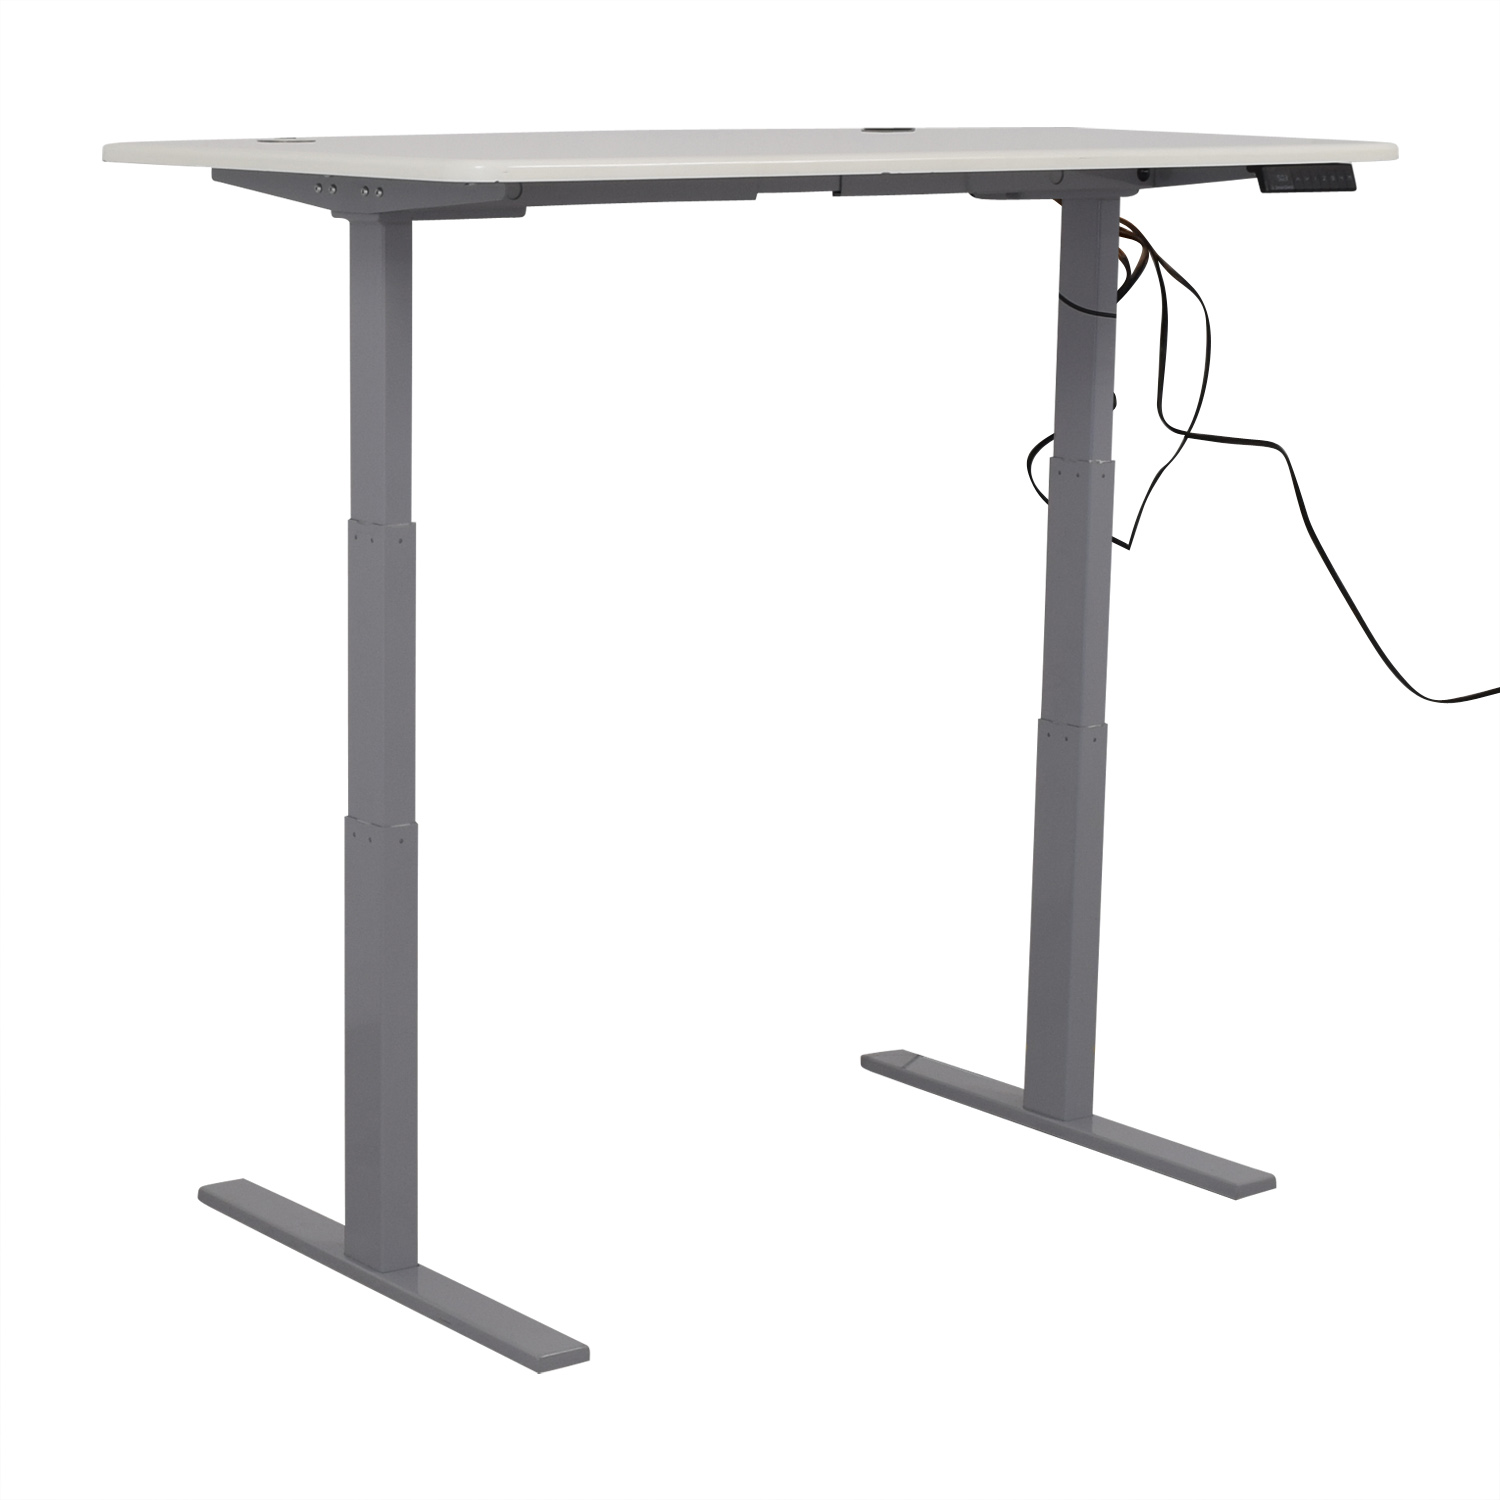 Poppin Series L Adjustable Height Single Desk sale